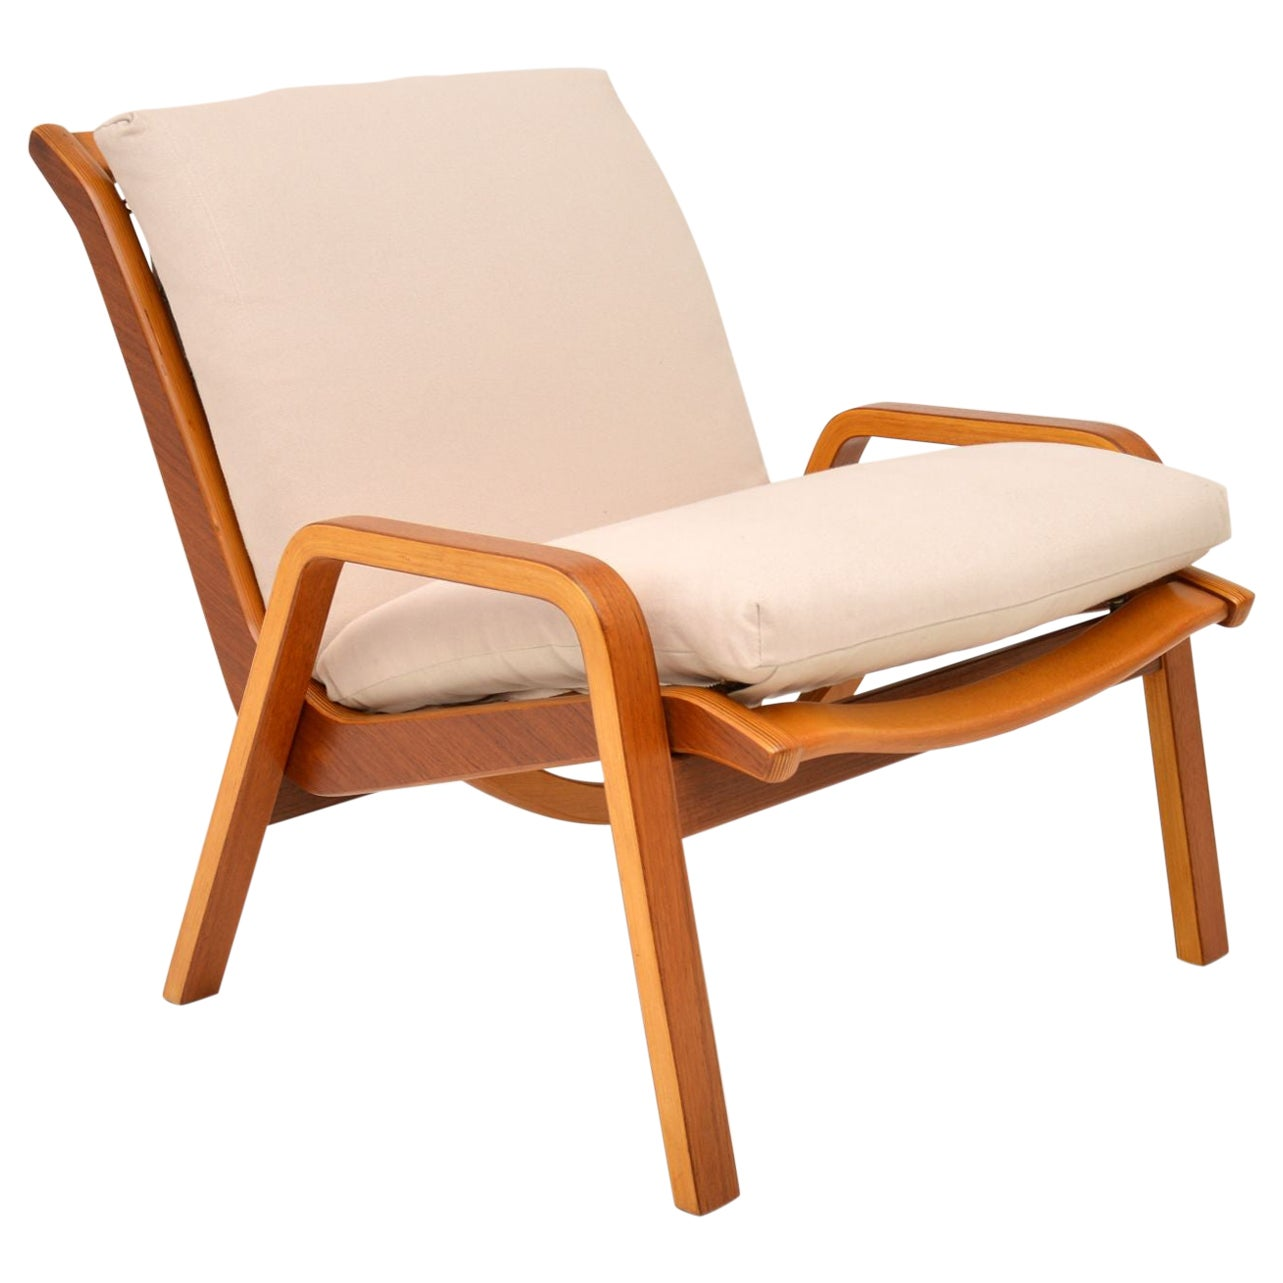 1960s Vintage Dutch Armchair by Cees Braakman for Pastoe